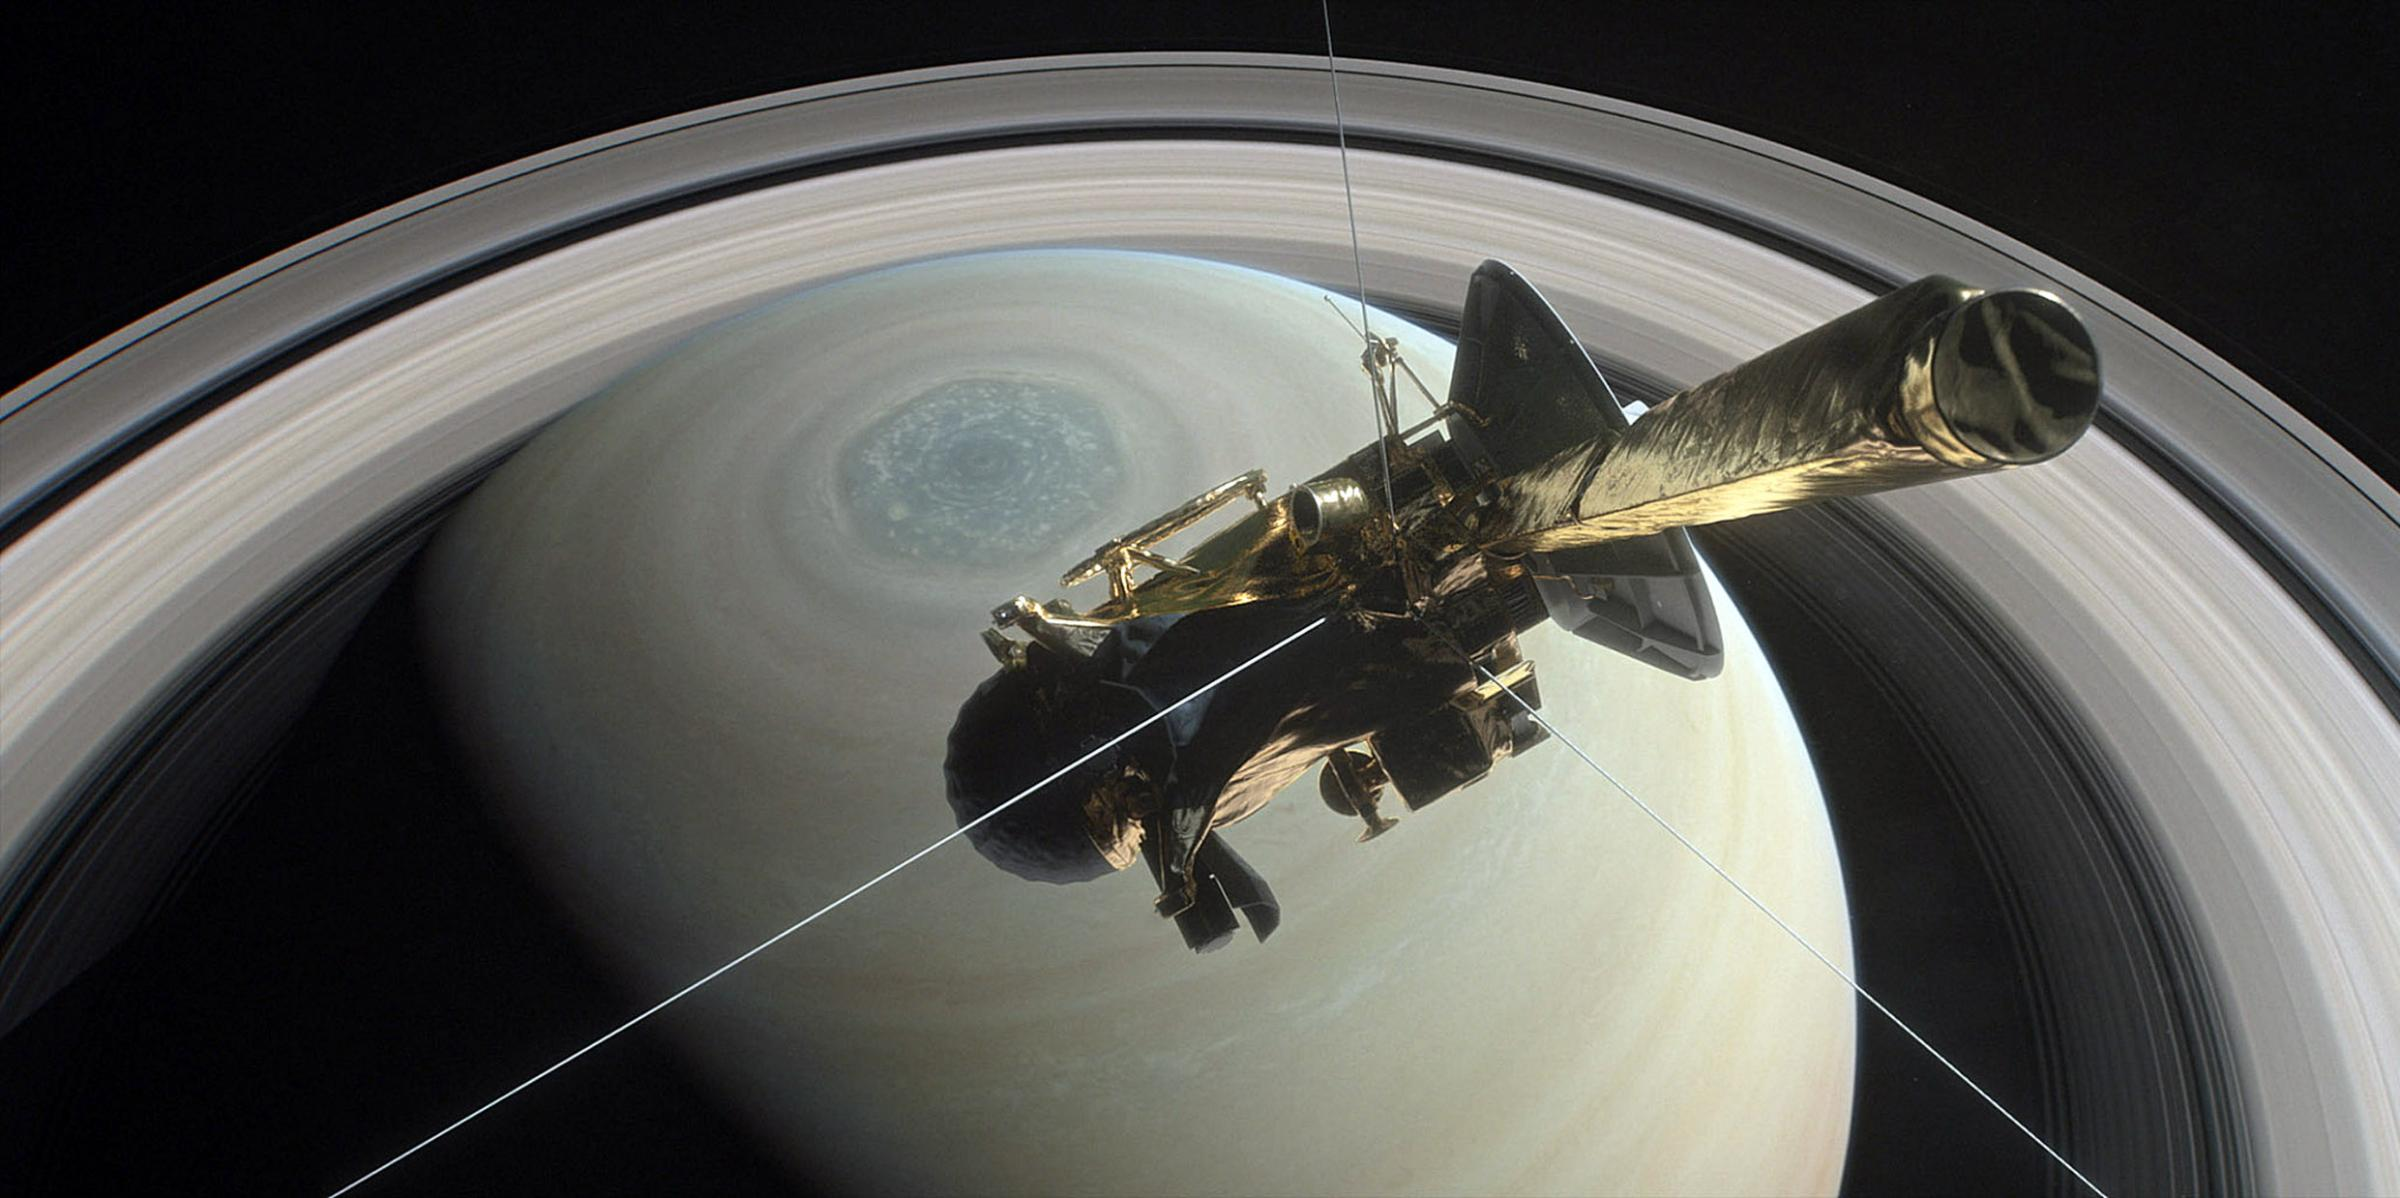 Cassini is said to have transformed our understanding of the second-largest planet in our solar system